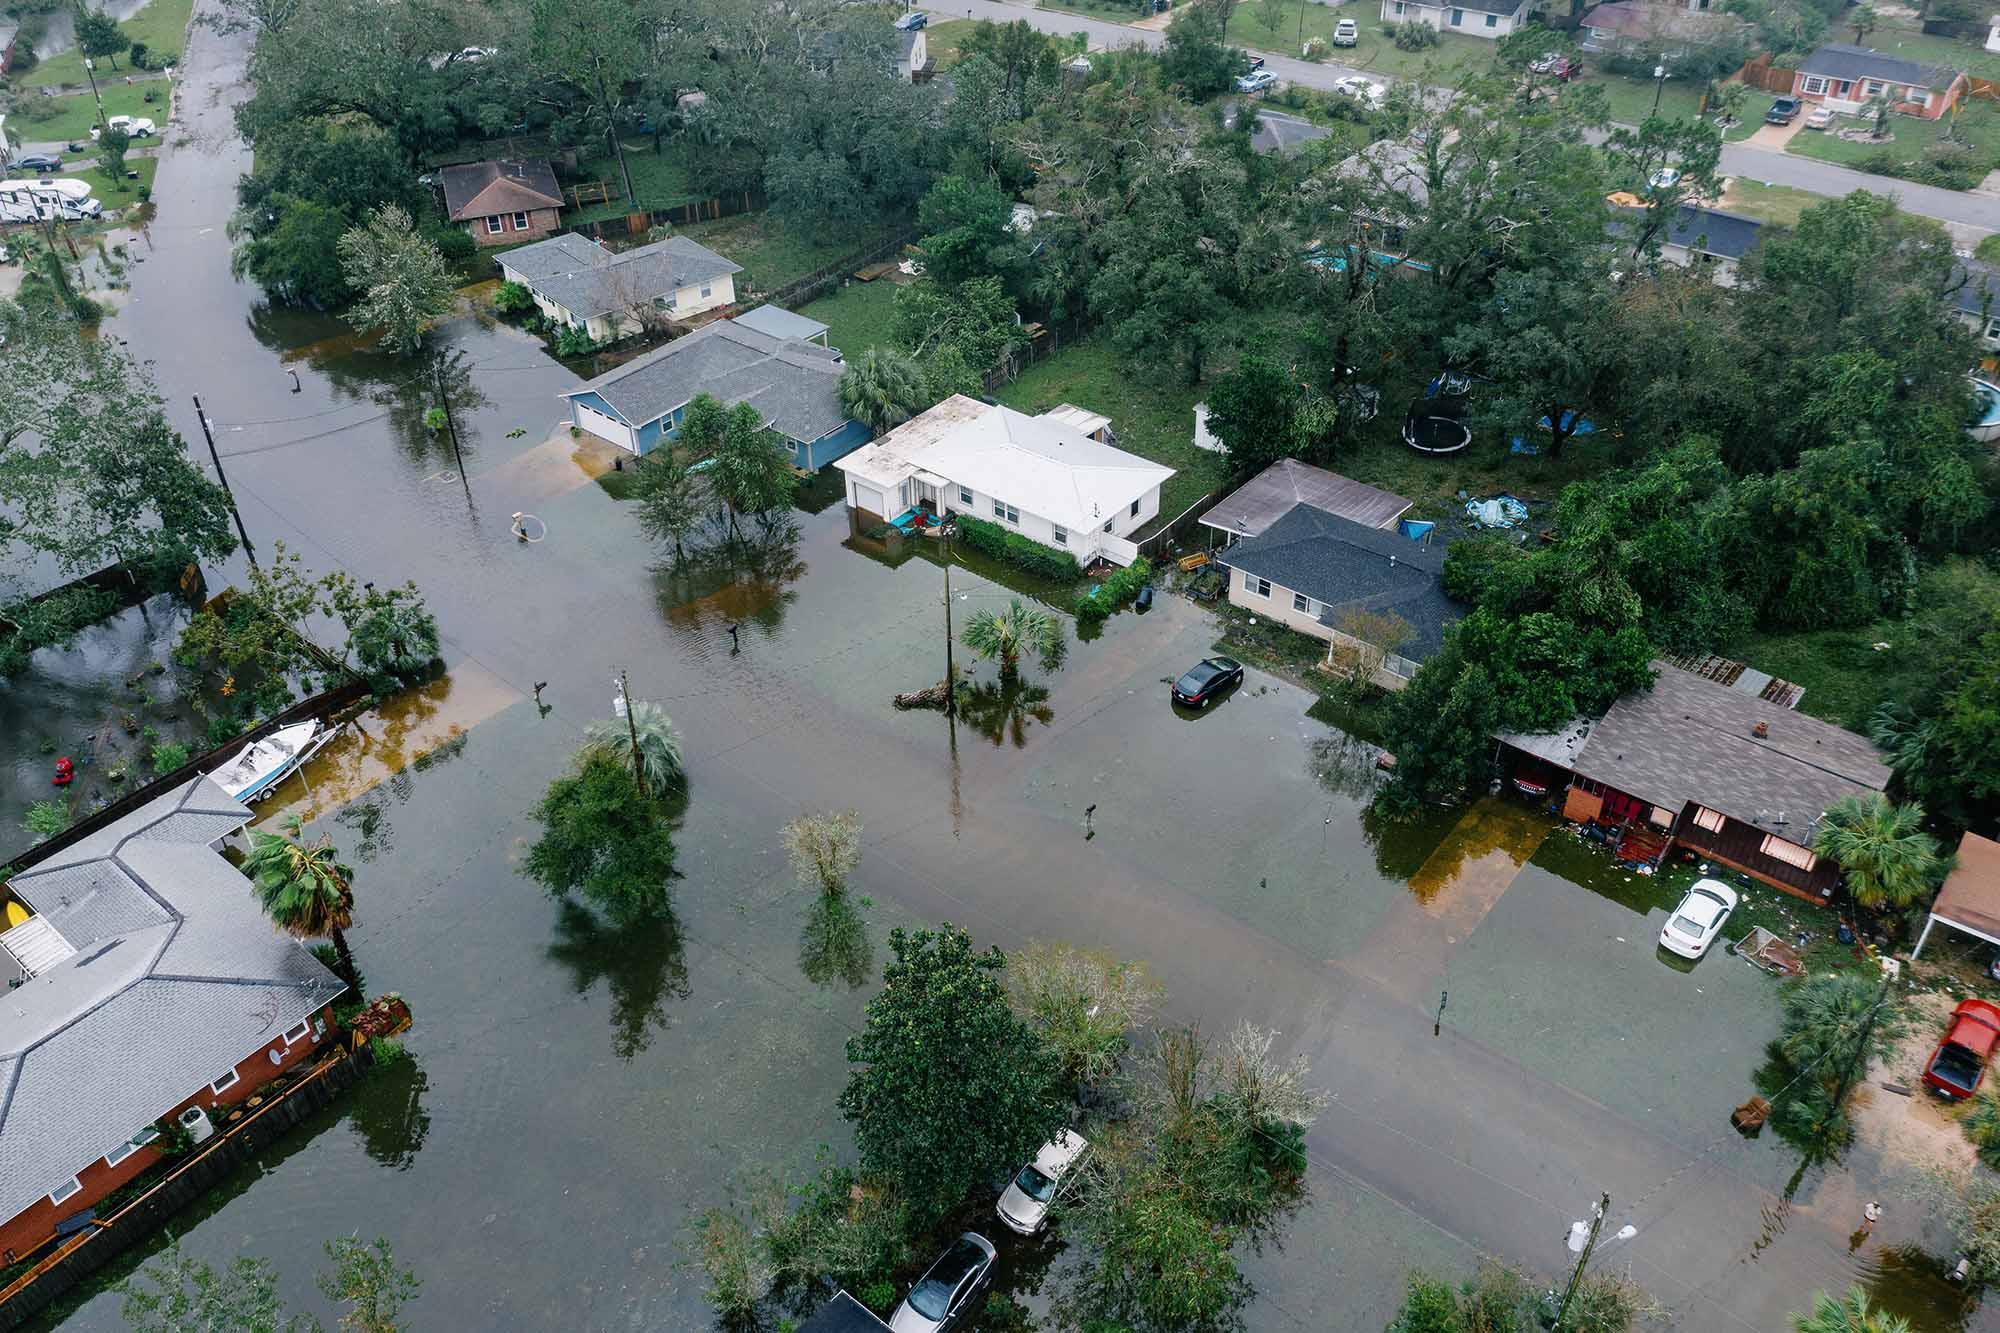 An aerial view of a town in Louisiana flooded after a hurricane.